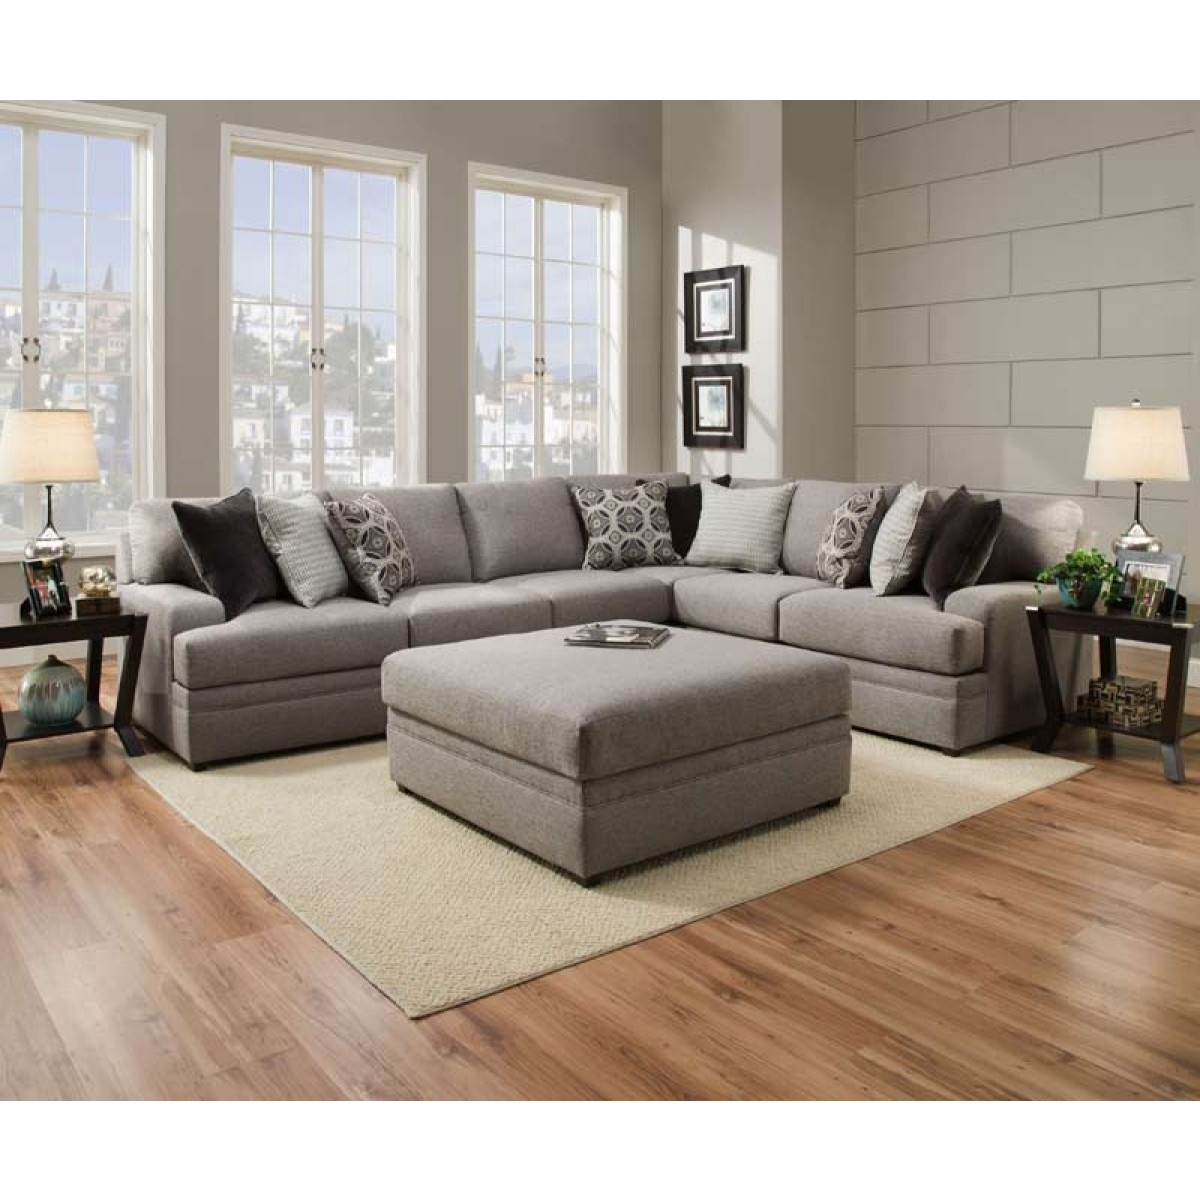 Simmons Upholstery - Dublin Briar 2 Piece Sectional Sofa Set inside Aurora 2 Piece Sectionals (Image 28 of 30)